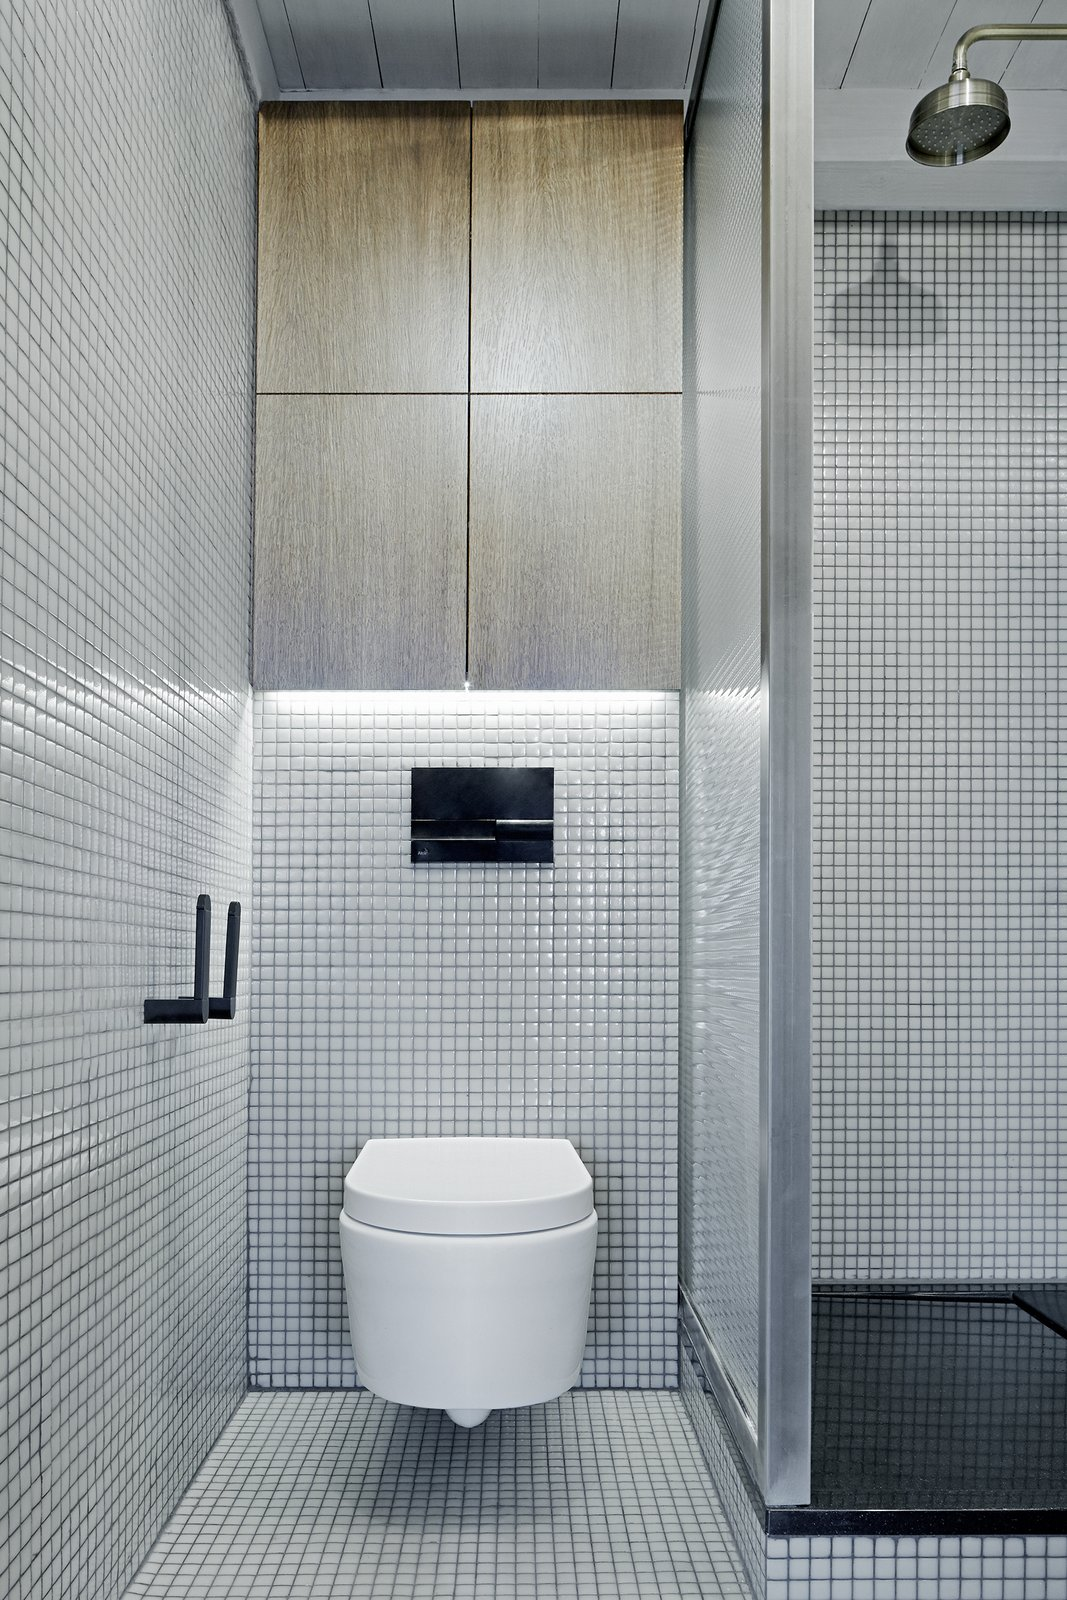 The tiles are also from Hisbalit, though green-grey and rectangular. The shower tap is from Omnires.  Master Bath from A Sleek Kitchen and Double Bathroom Renovation in Prague